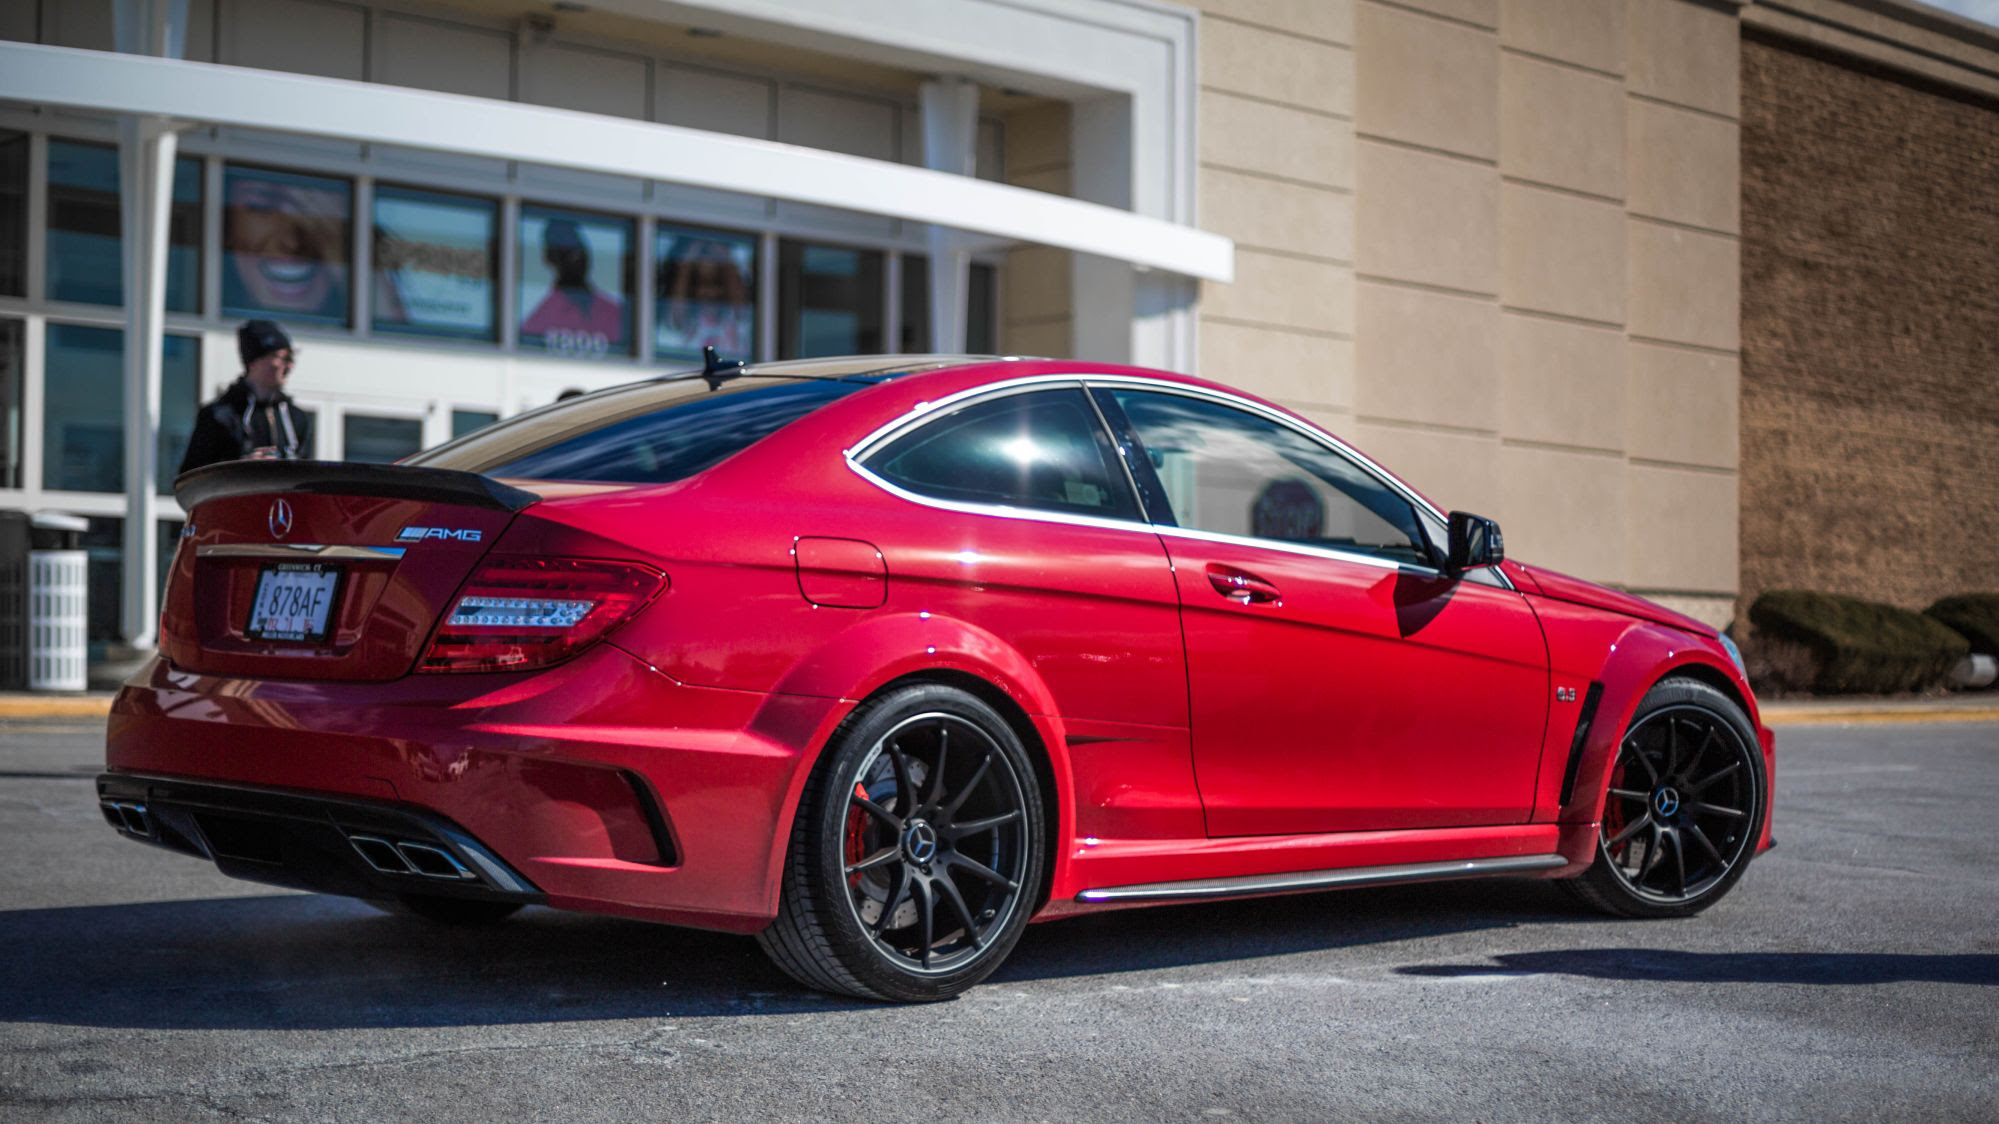 2012 C63 AMG Black Series for Sale! - MBWorld